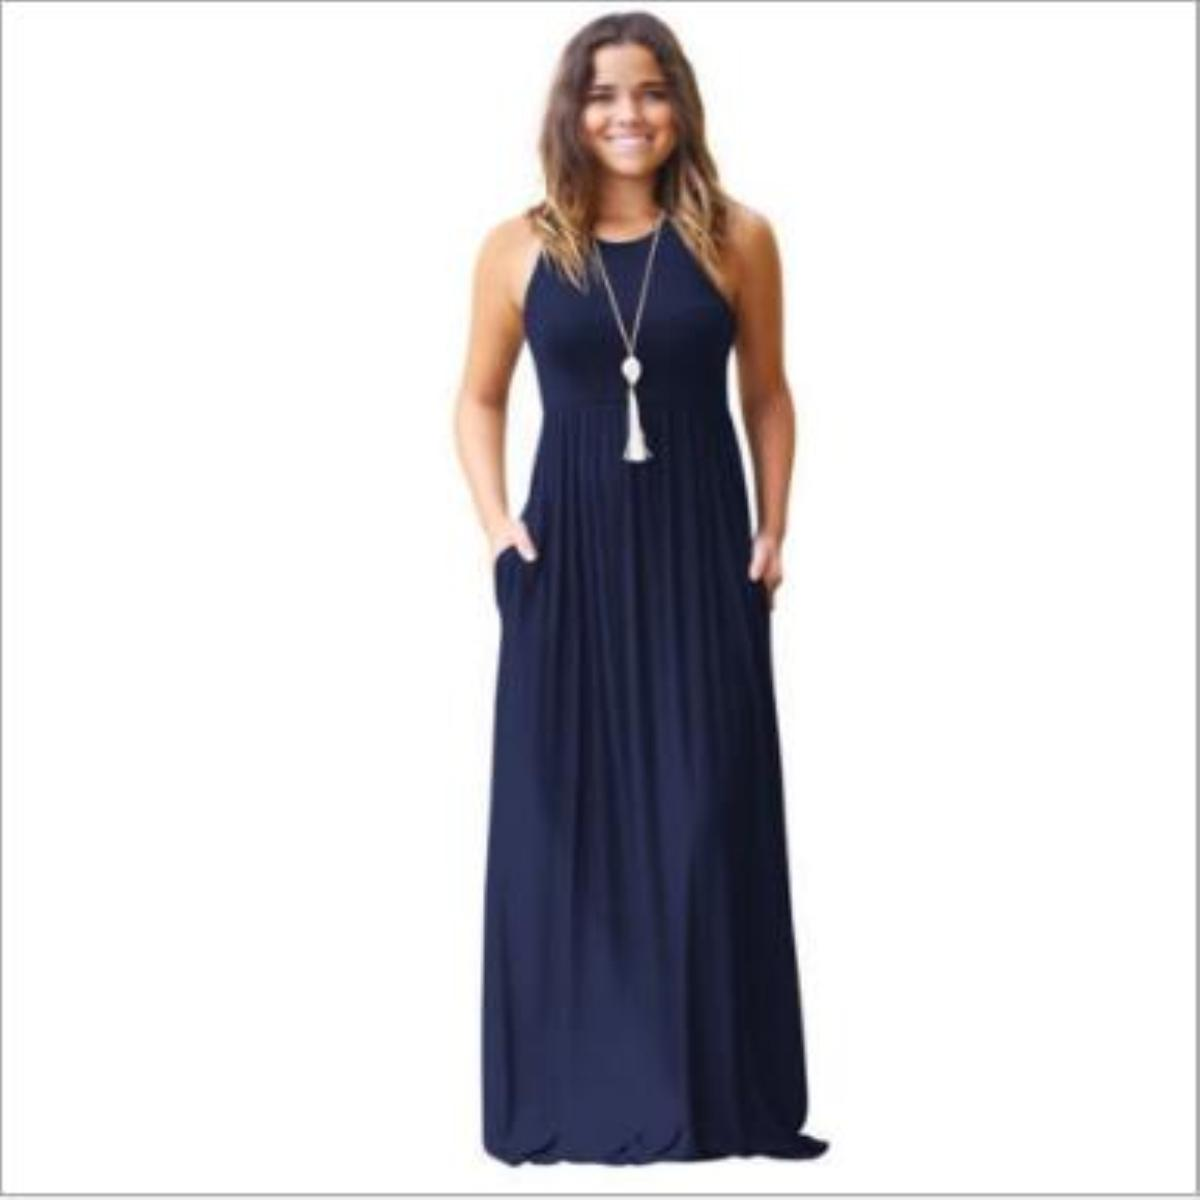 9f408ad1f Women's Sleeveless Luxury Fashion Racerback Loose Plain Maxi Dresses Casual  Long Dresses with Pockets 8 Colors Optional Plus Size S- 2XL